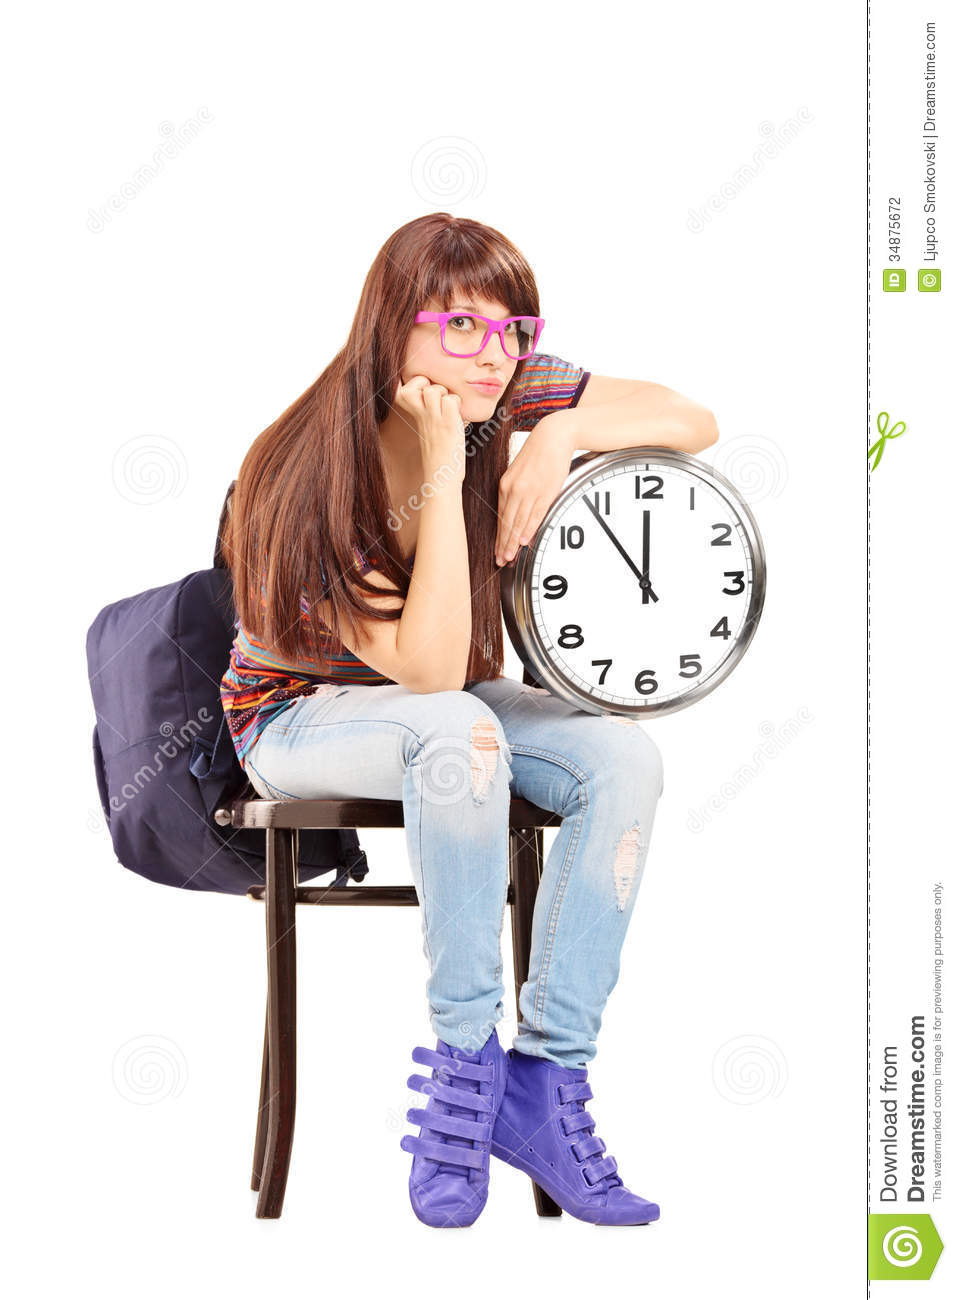 {focus_keyword} Clear-Cut Systems For grademiners essaysrescue - What's Required sad female student sitting chair holding clock wooden wall isolated white background 34875672